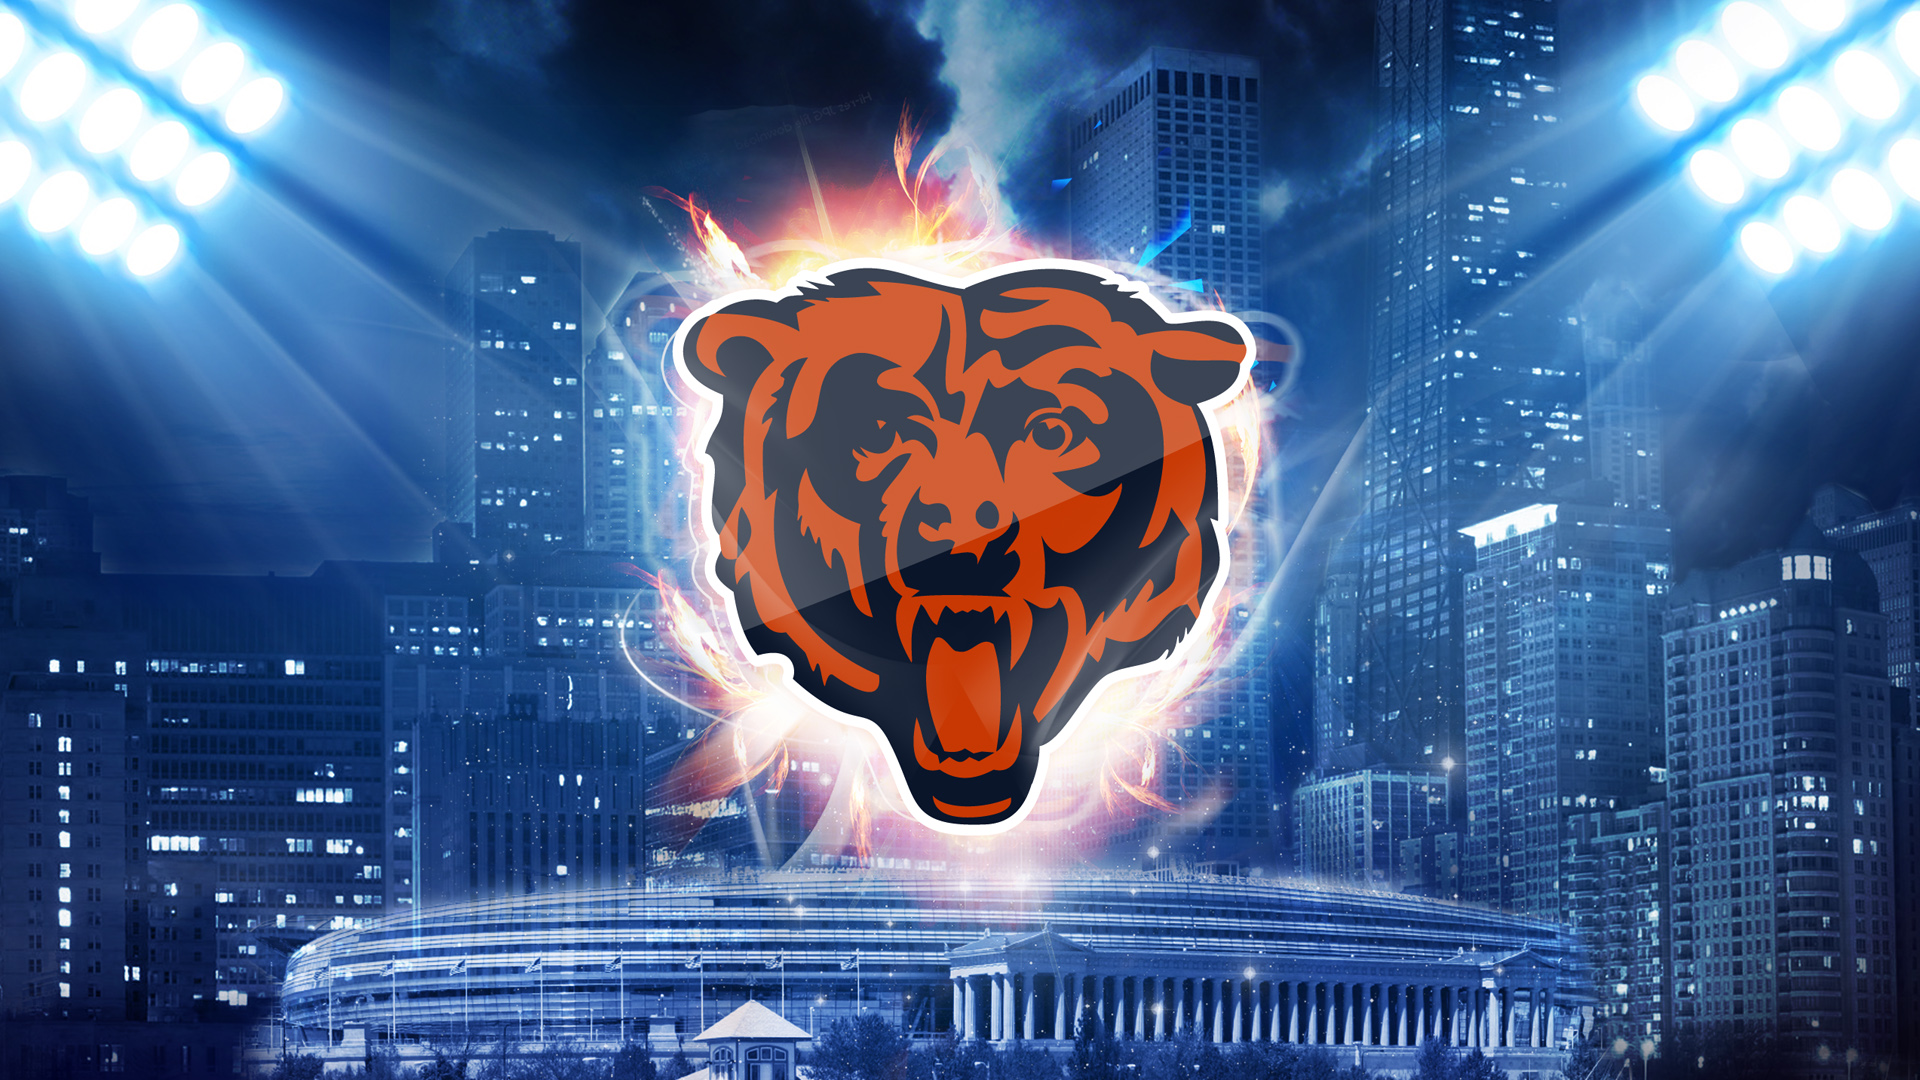 HD wallpapers chicago bears iphone wallpaper hd